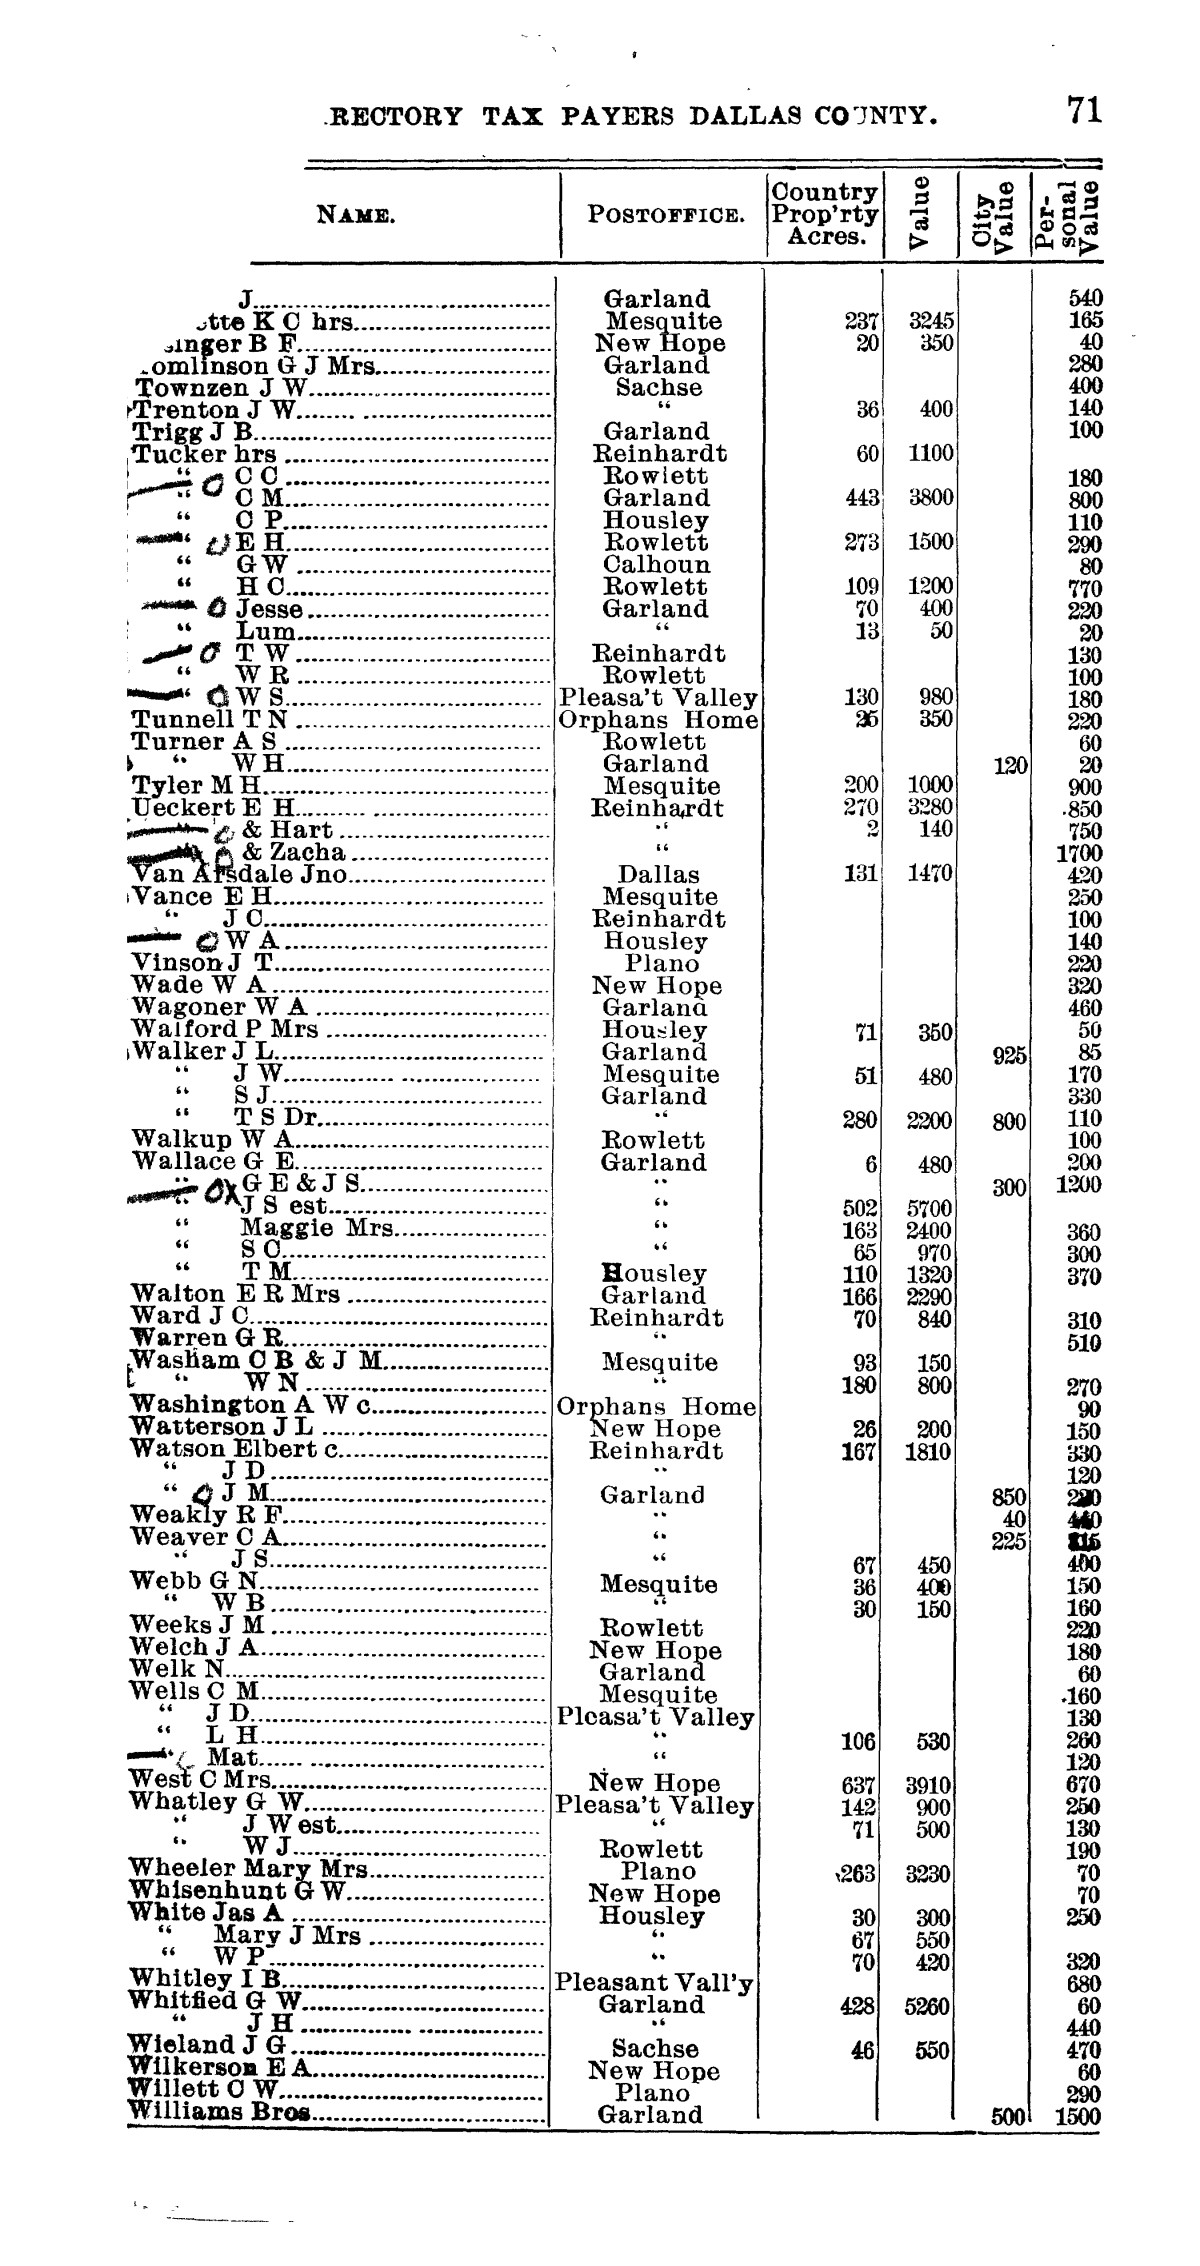 Official directory, taxpayers of Dallas County, Texas                                                                                                      71